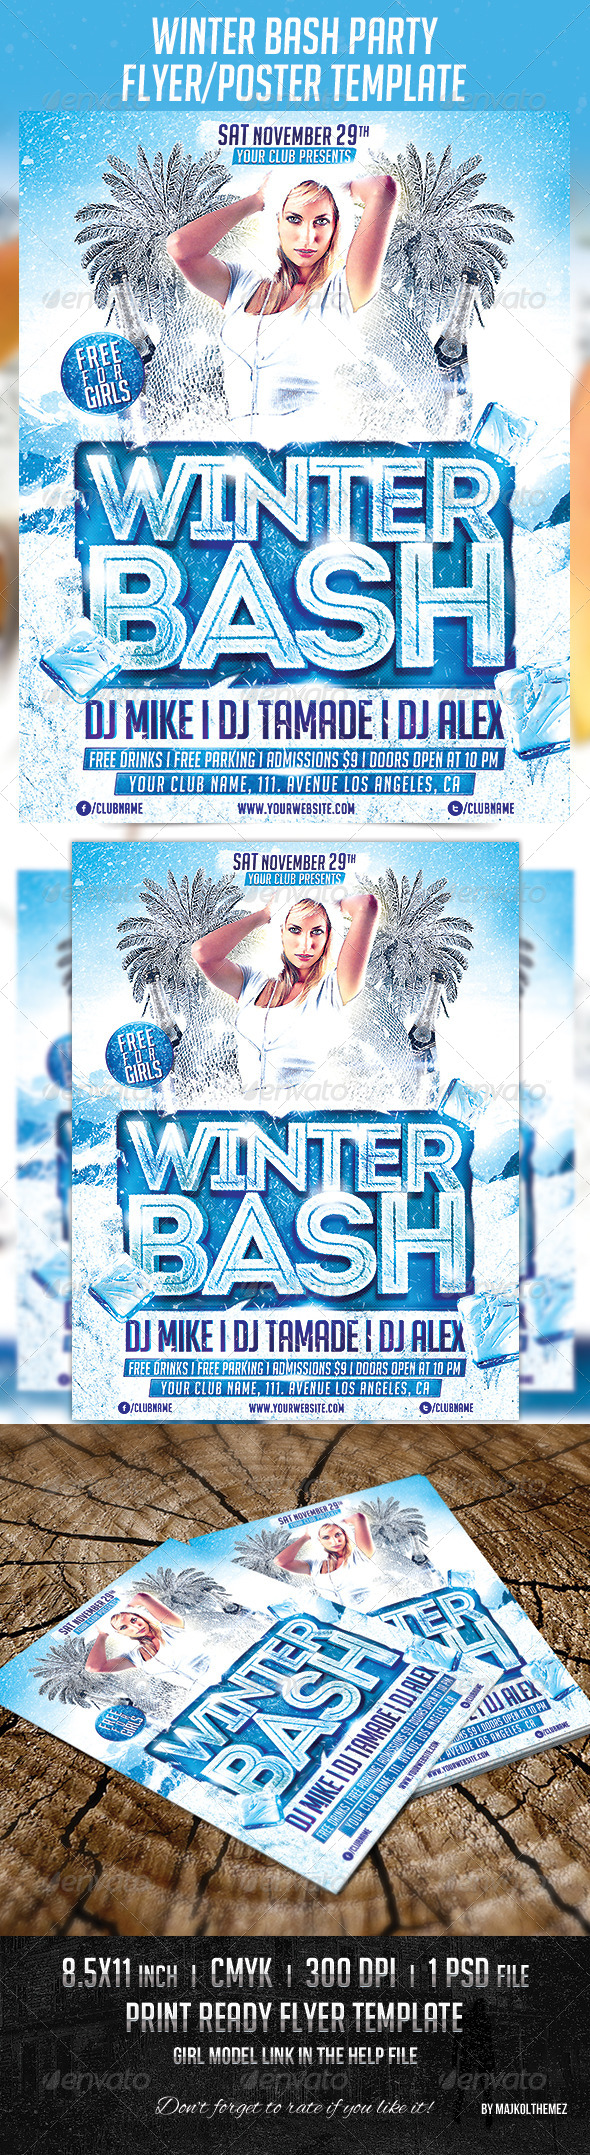 Winter Bash Party Poster Template - Clubs & Parties Events